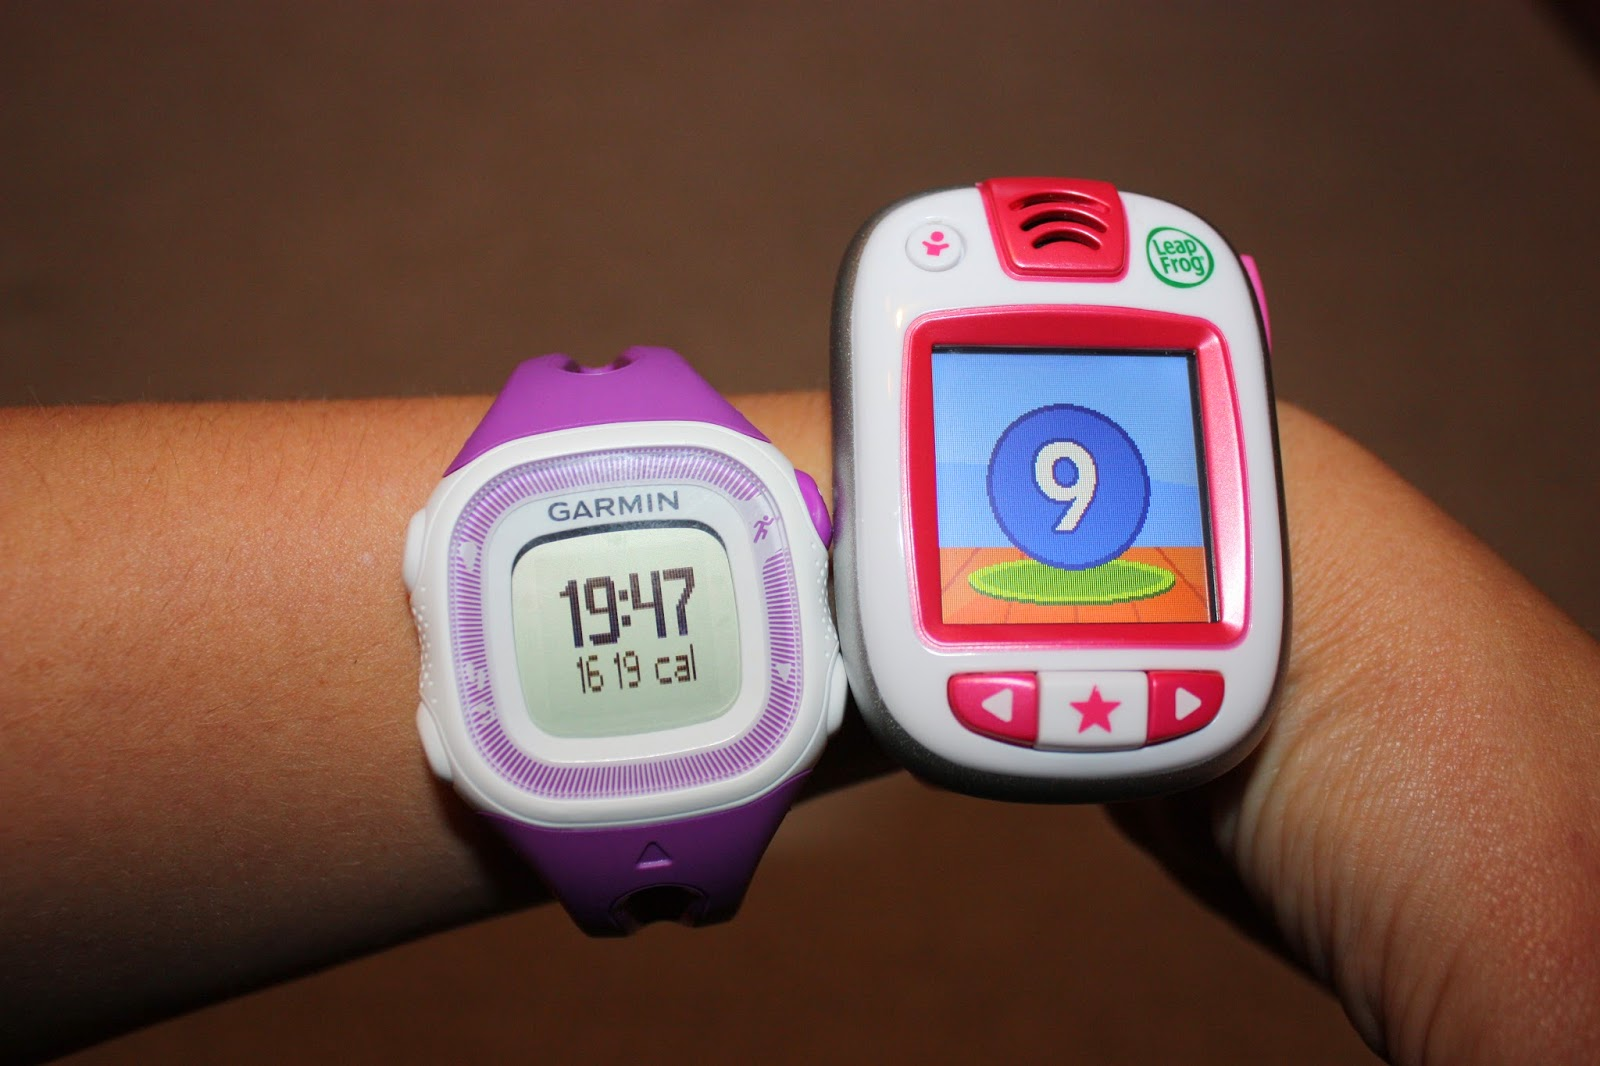 Mummy and Kids LeapBand fitness watches